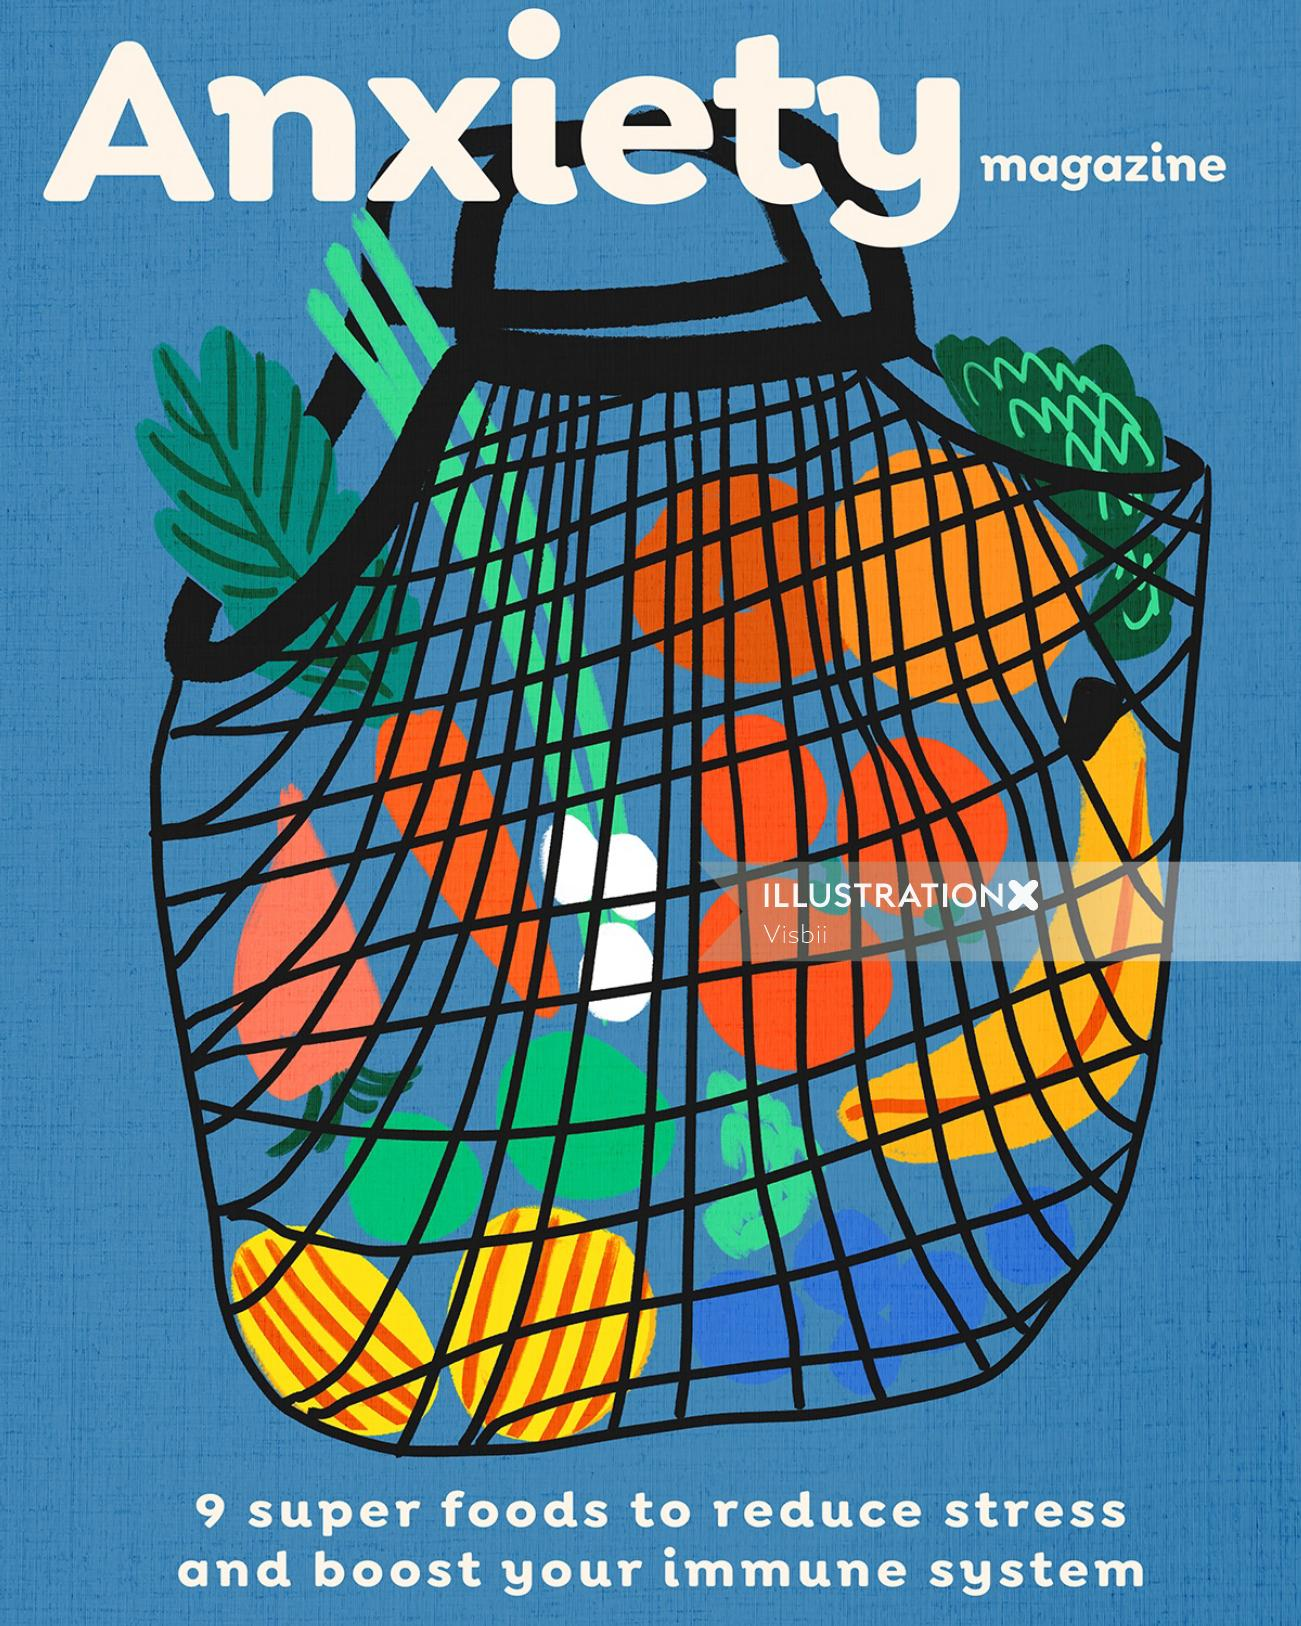 Magazine cover illustration for Anxiety magazine